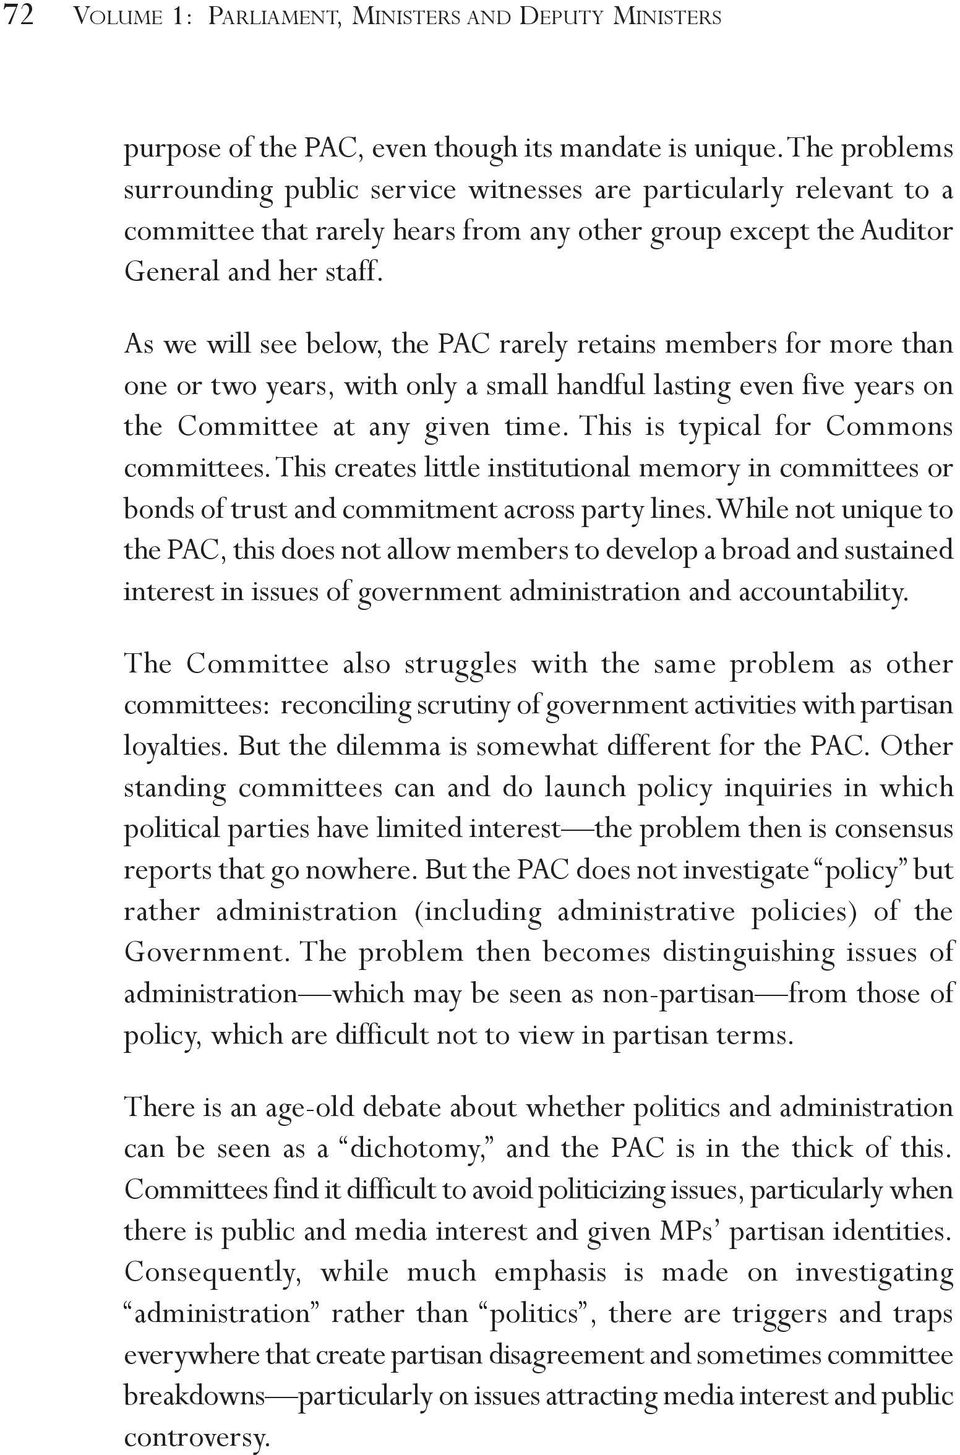 As we will see below, the PAC rarely retains members for more than one or two years, with only a small handful lasting even five years on the Committee at any given time.